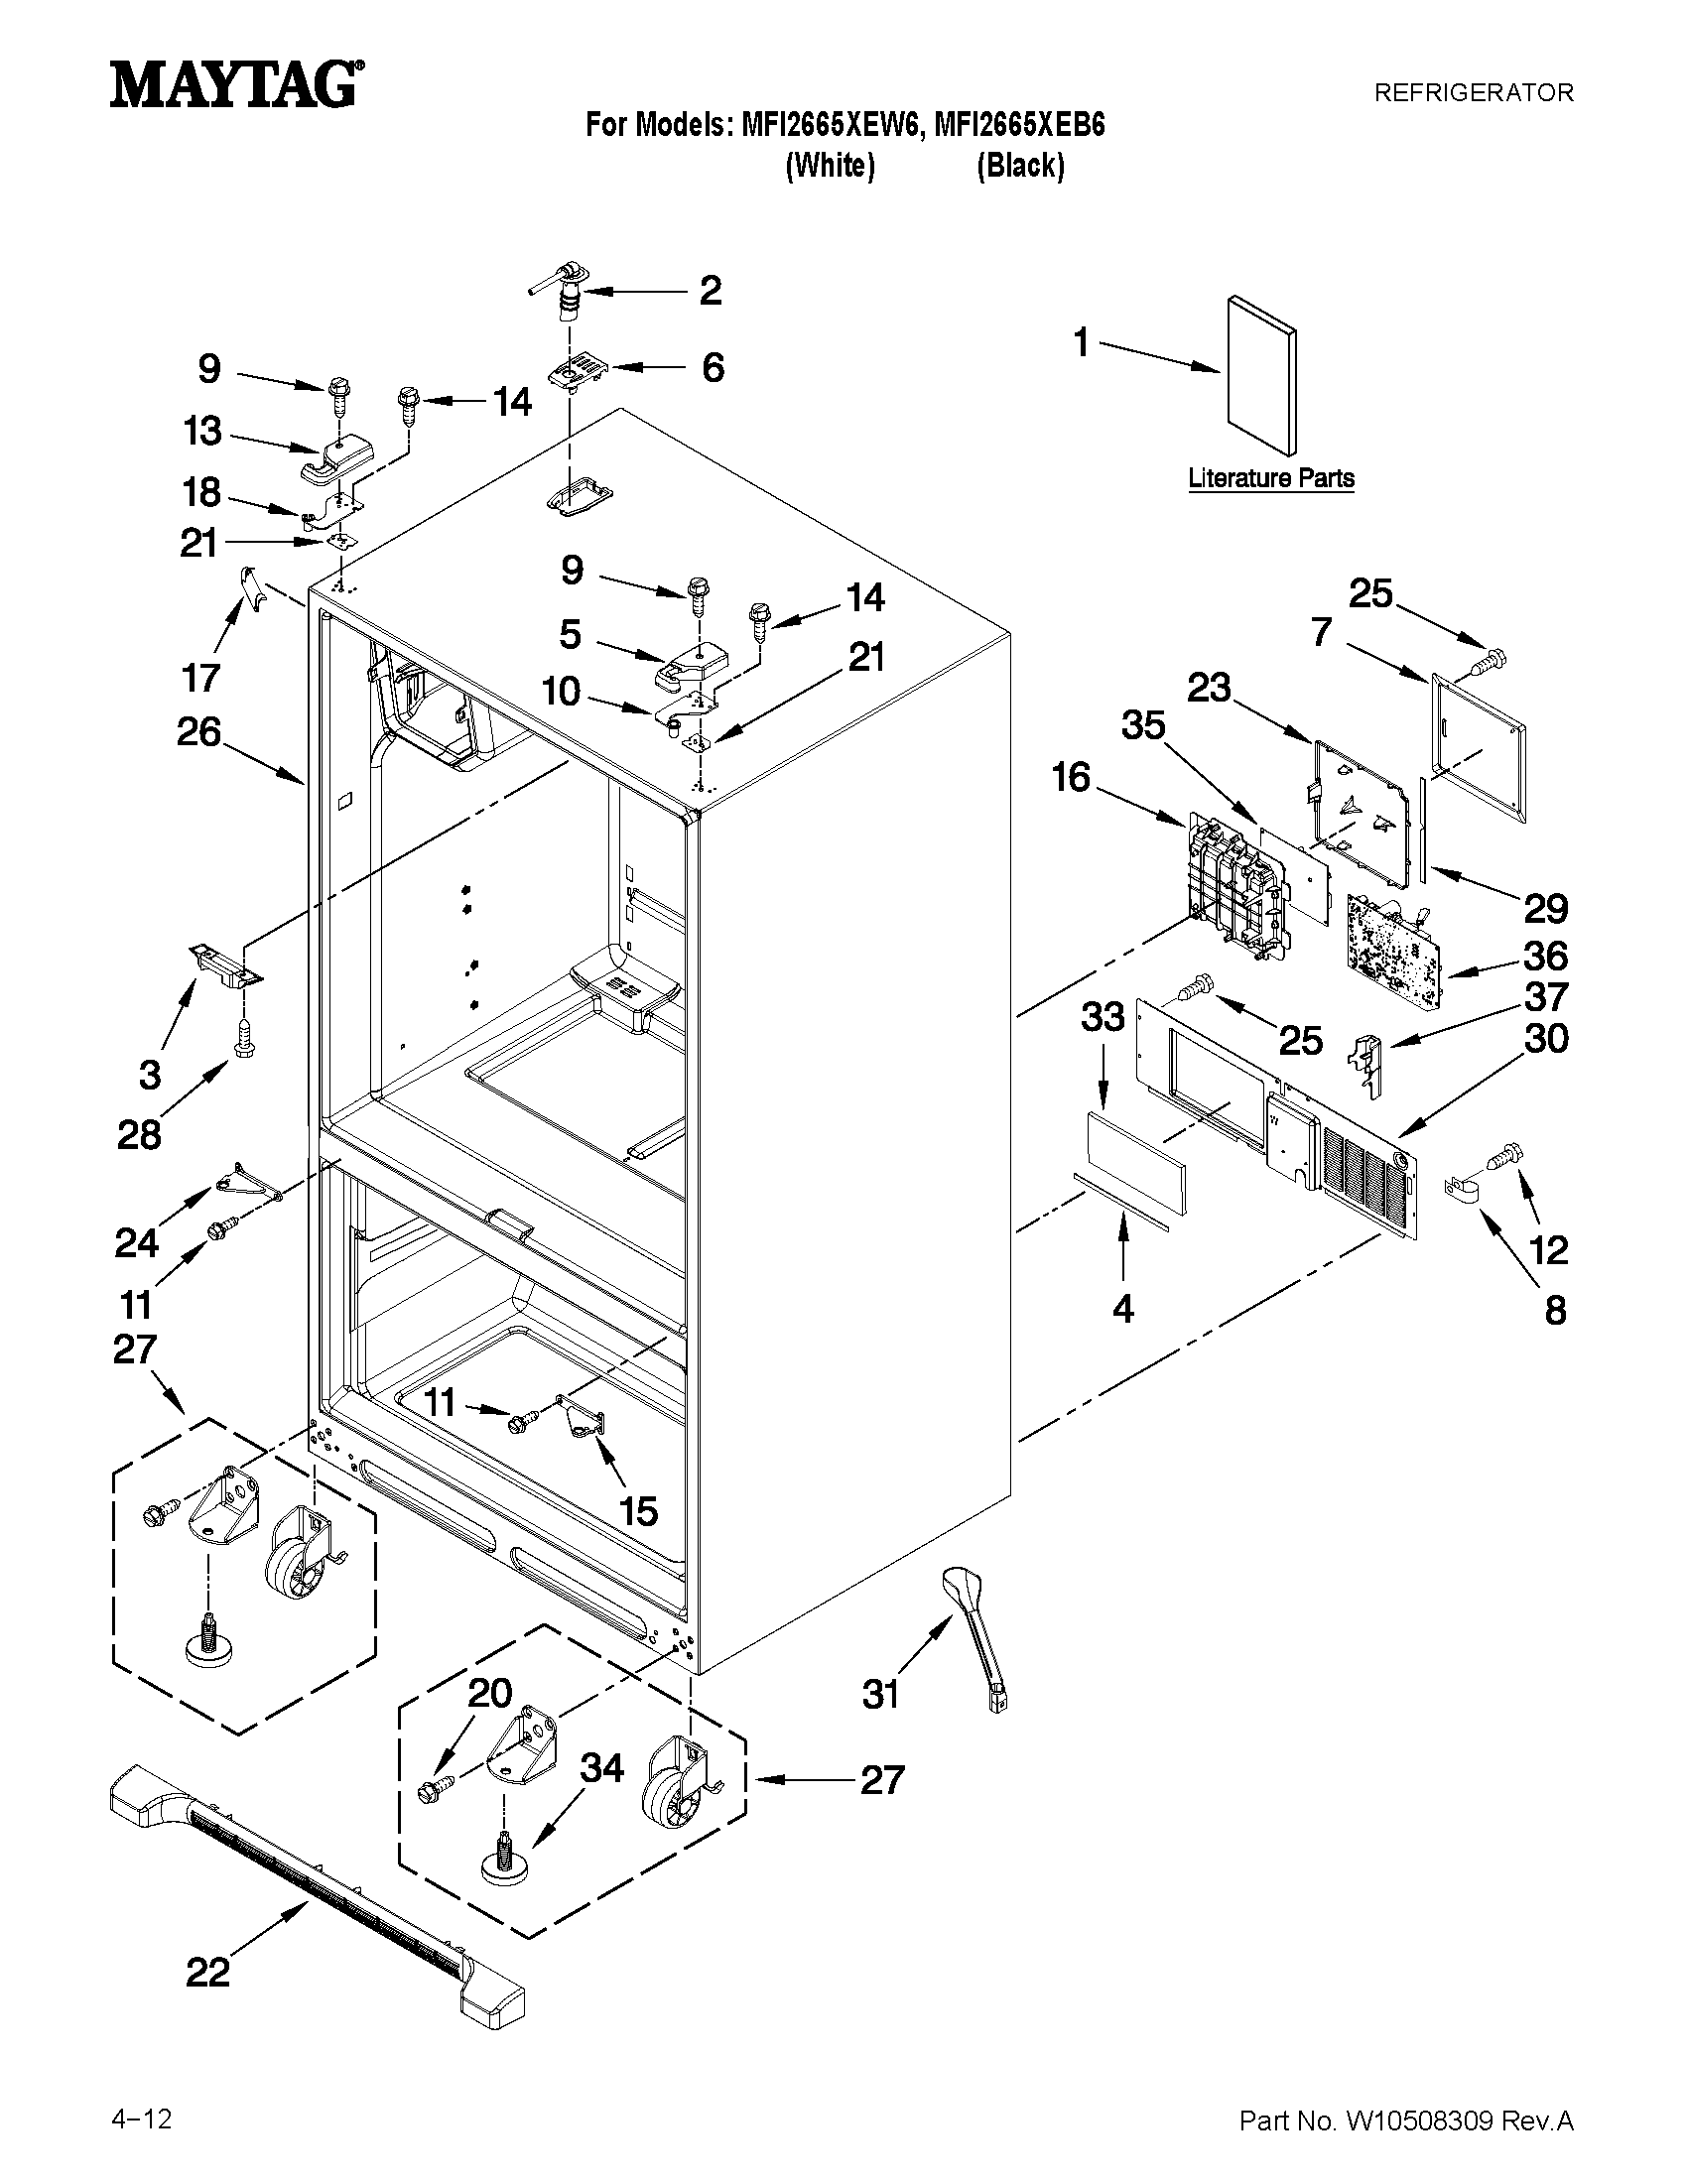 hight resolution of maytag mfi2665xew6 wiring schematic wiring diagrams simplemaytag model mfi2665xew6 bottom mount refrigerator genuine parts maytag mfi2665xew6